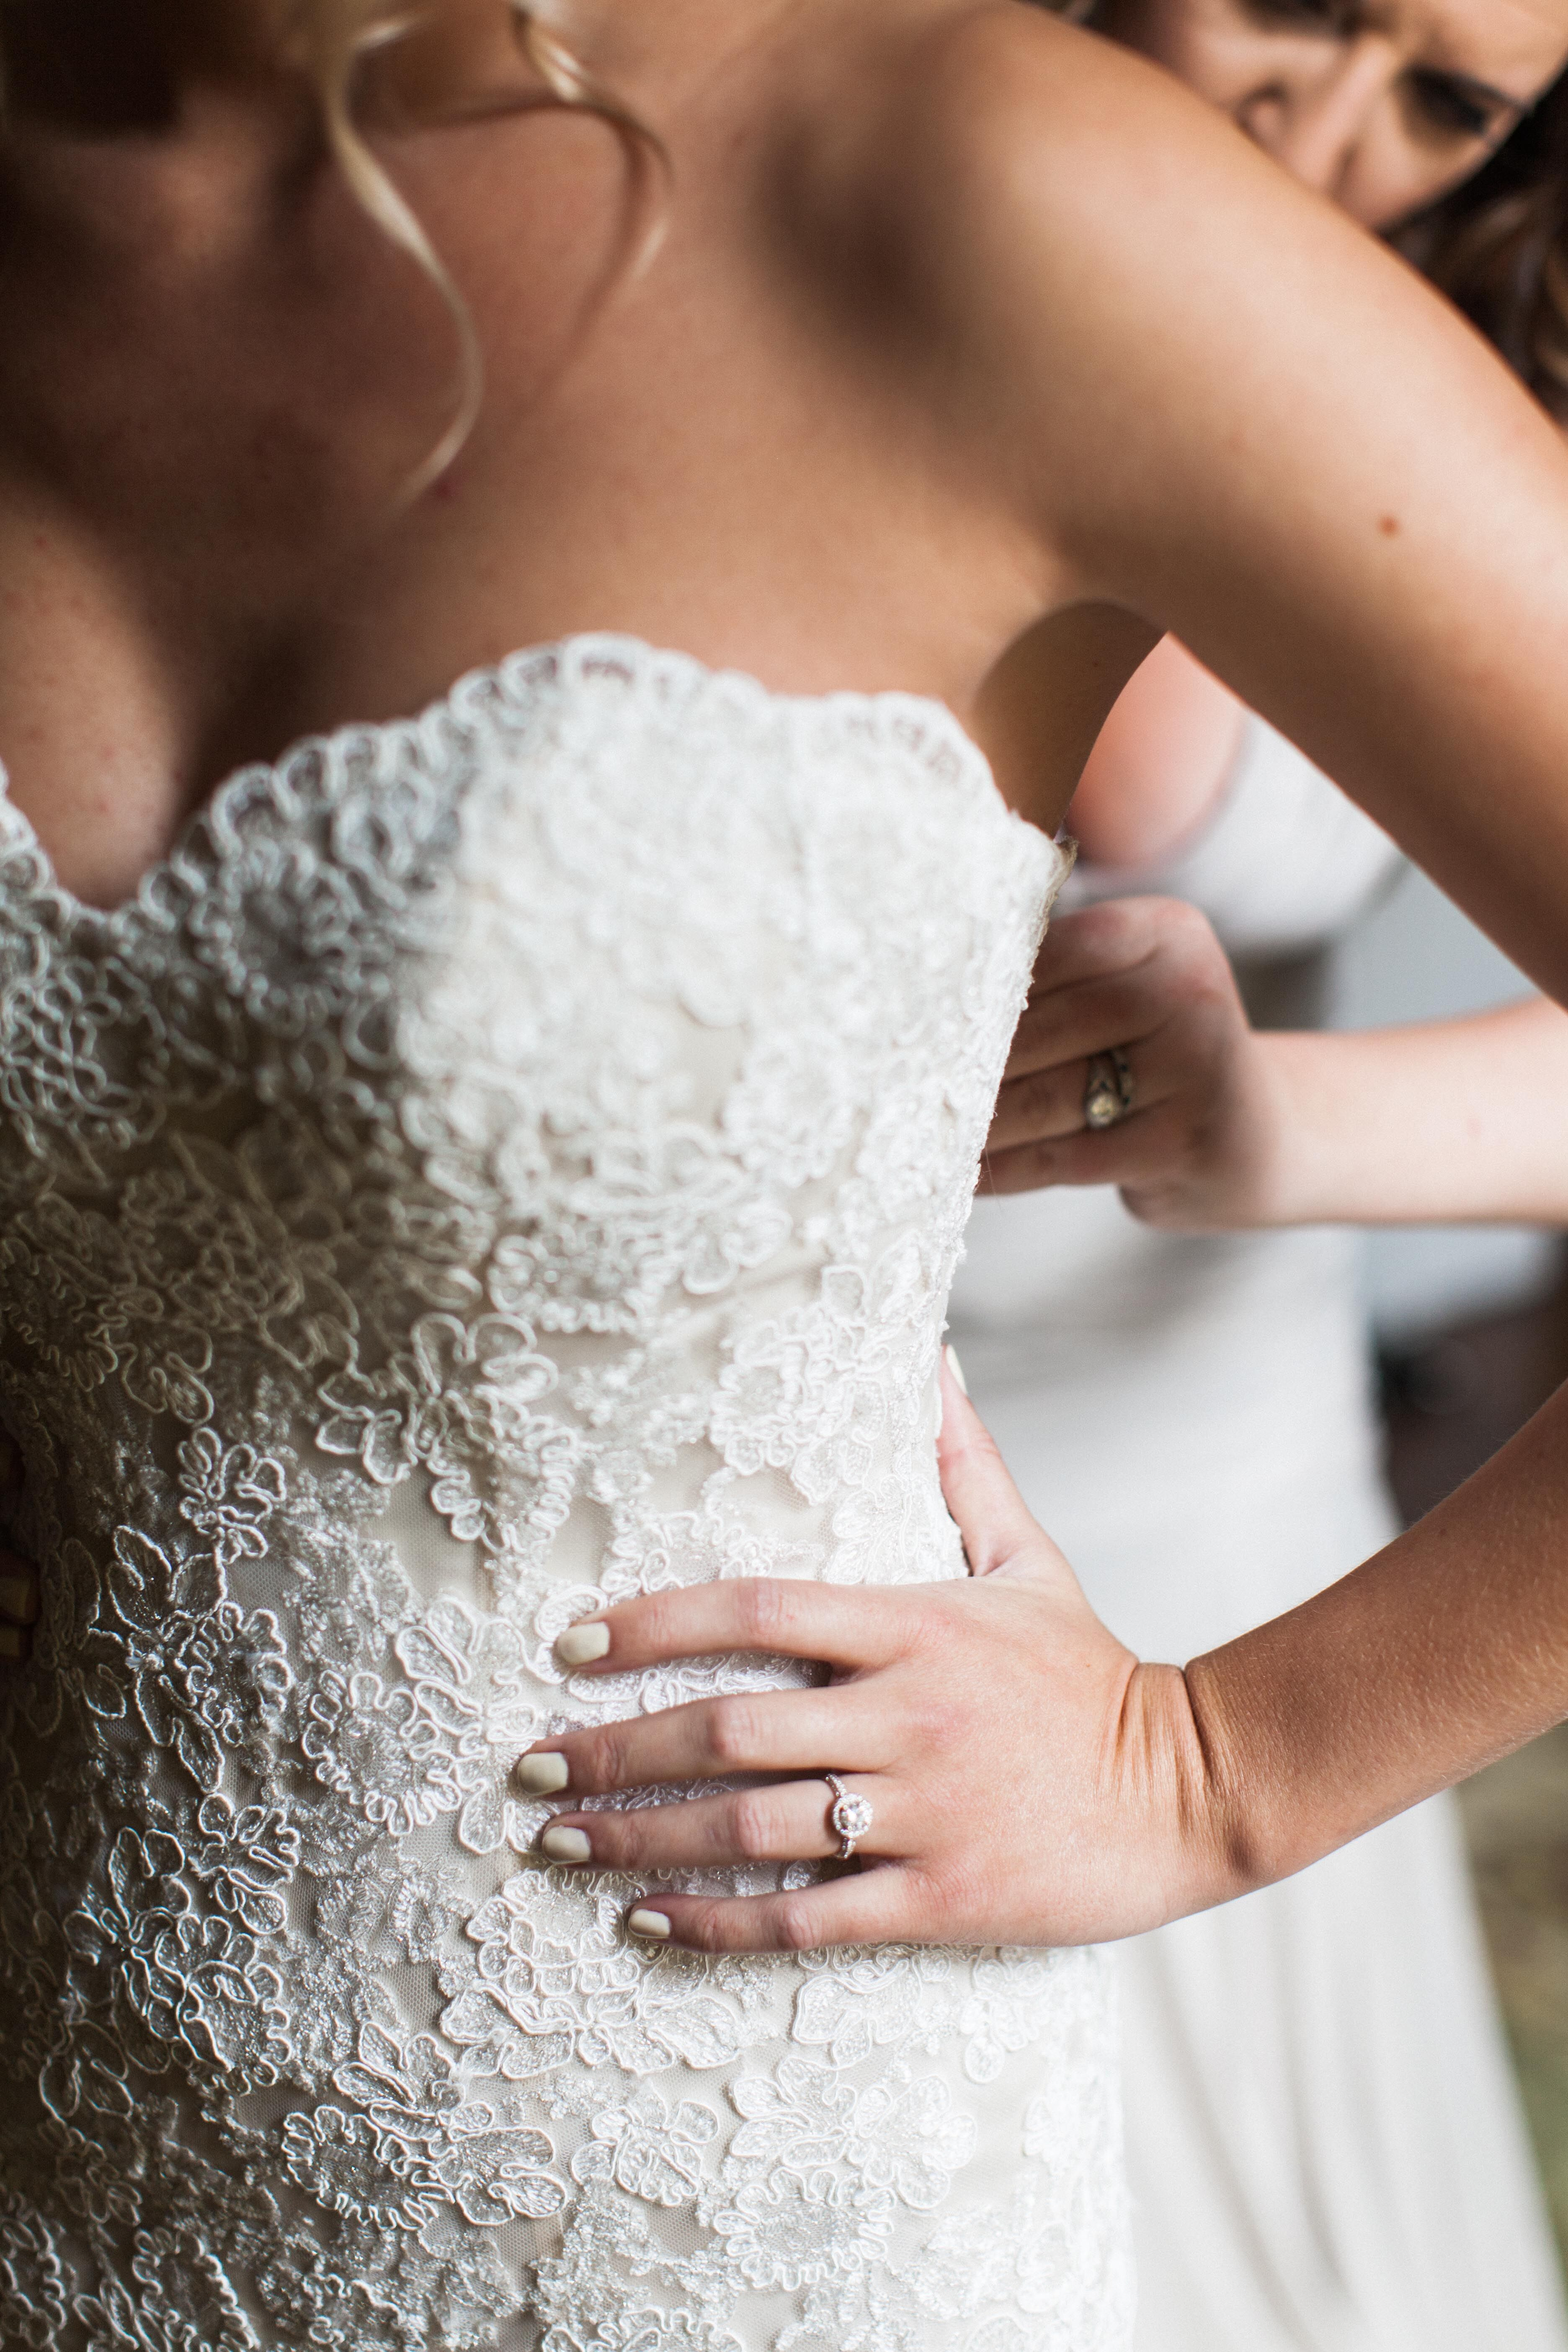 Champagne Wedding Dress With White Lace Overlay,Beach Ceremony Short Beach Wedding Dresses